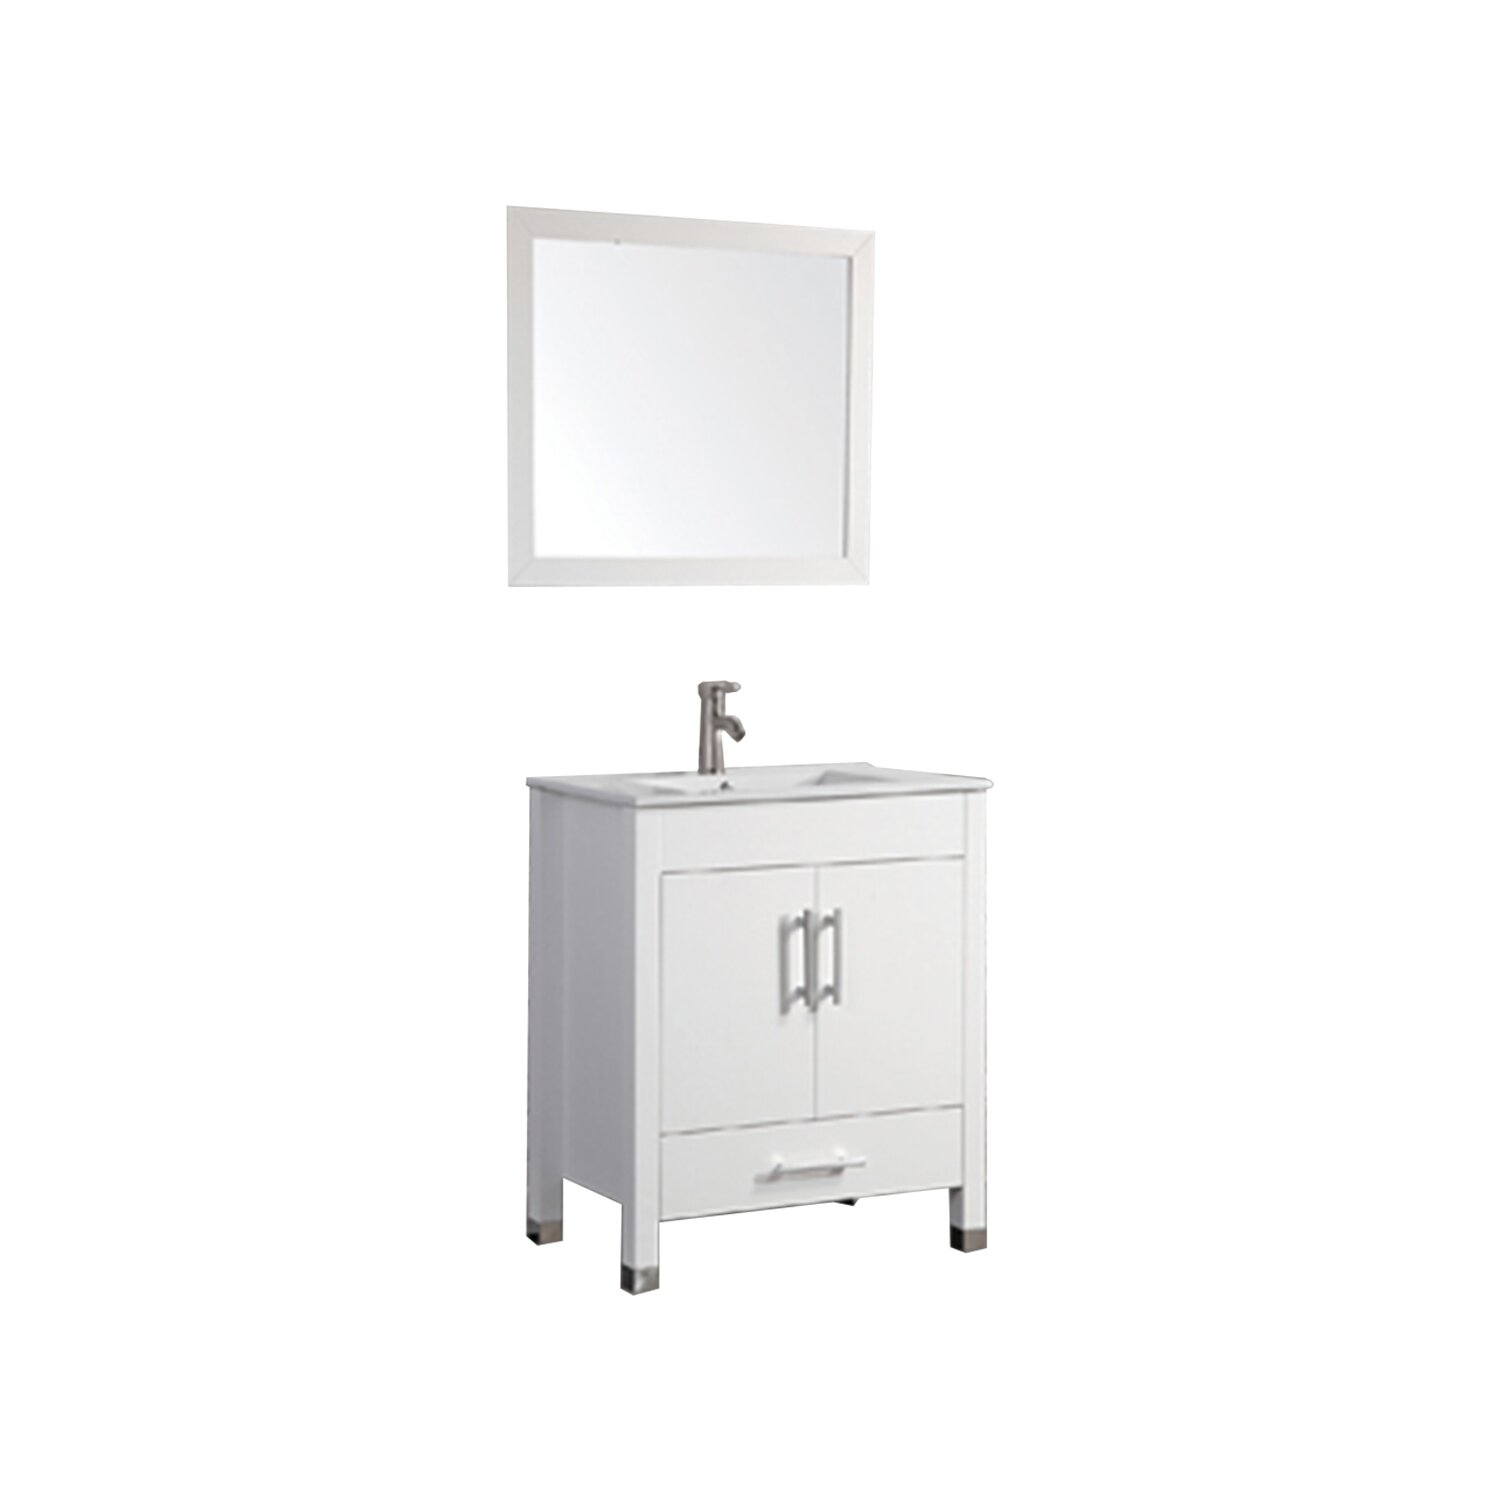 Mtdvanities monaco 30 single sink bathroom vanity set with mirror reviews wayfair Bathroom sink and vanity sets